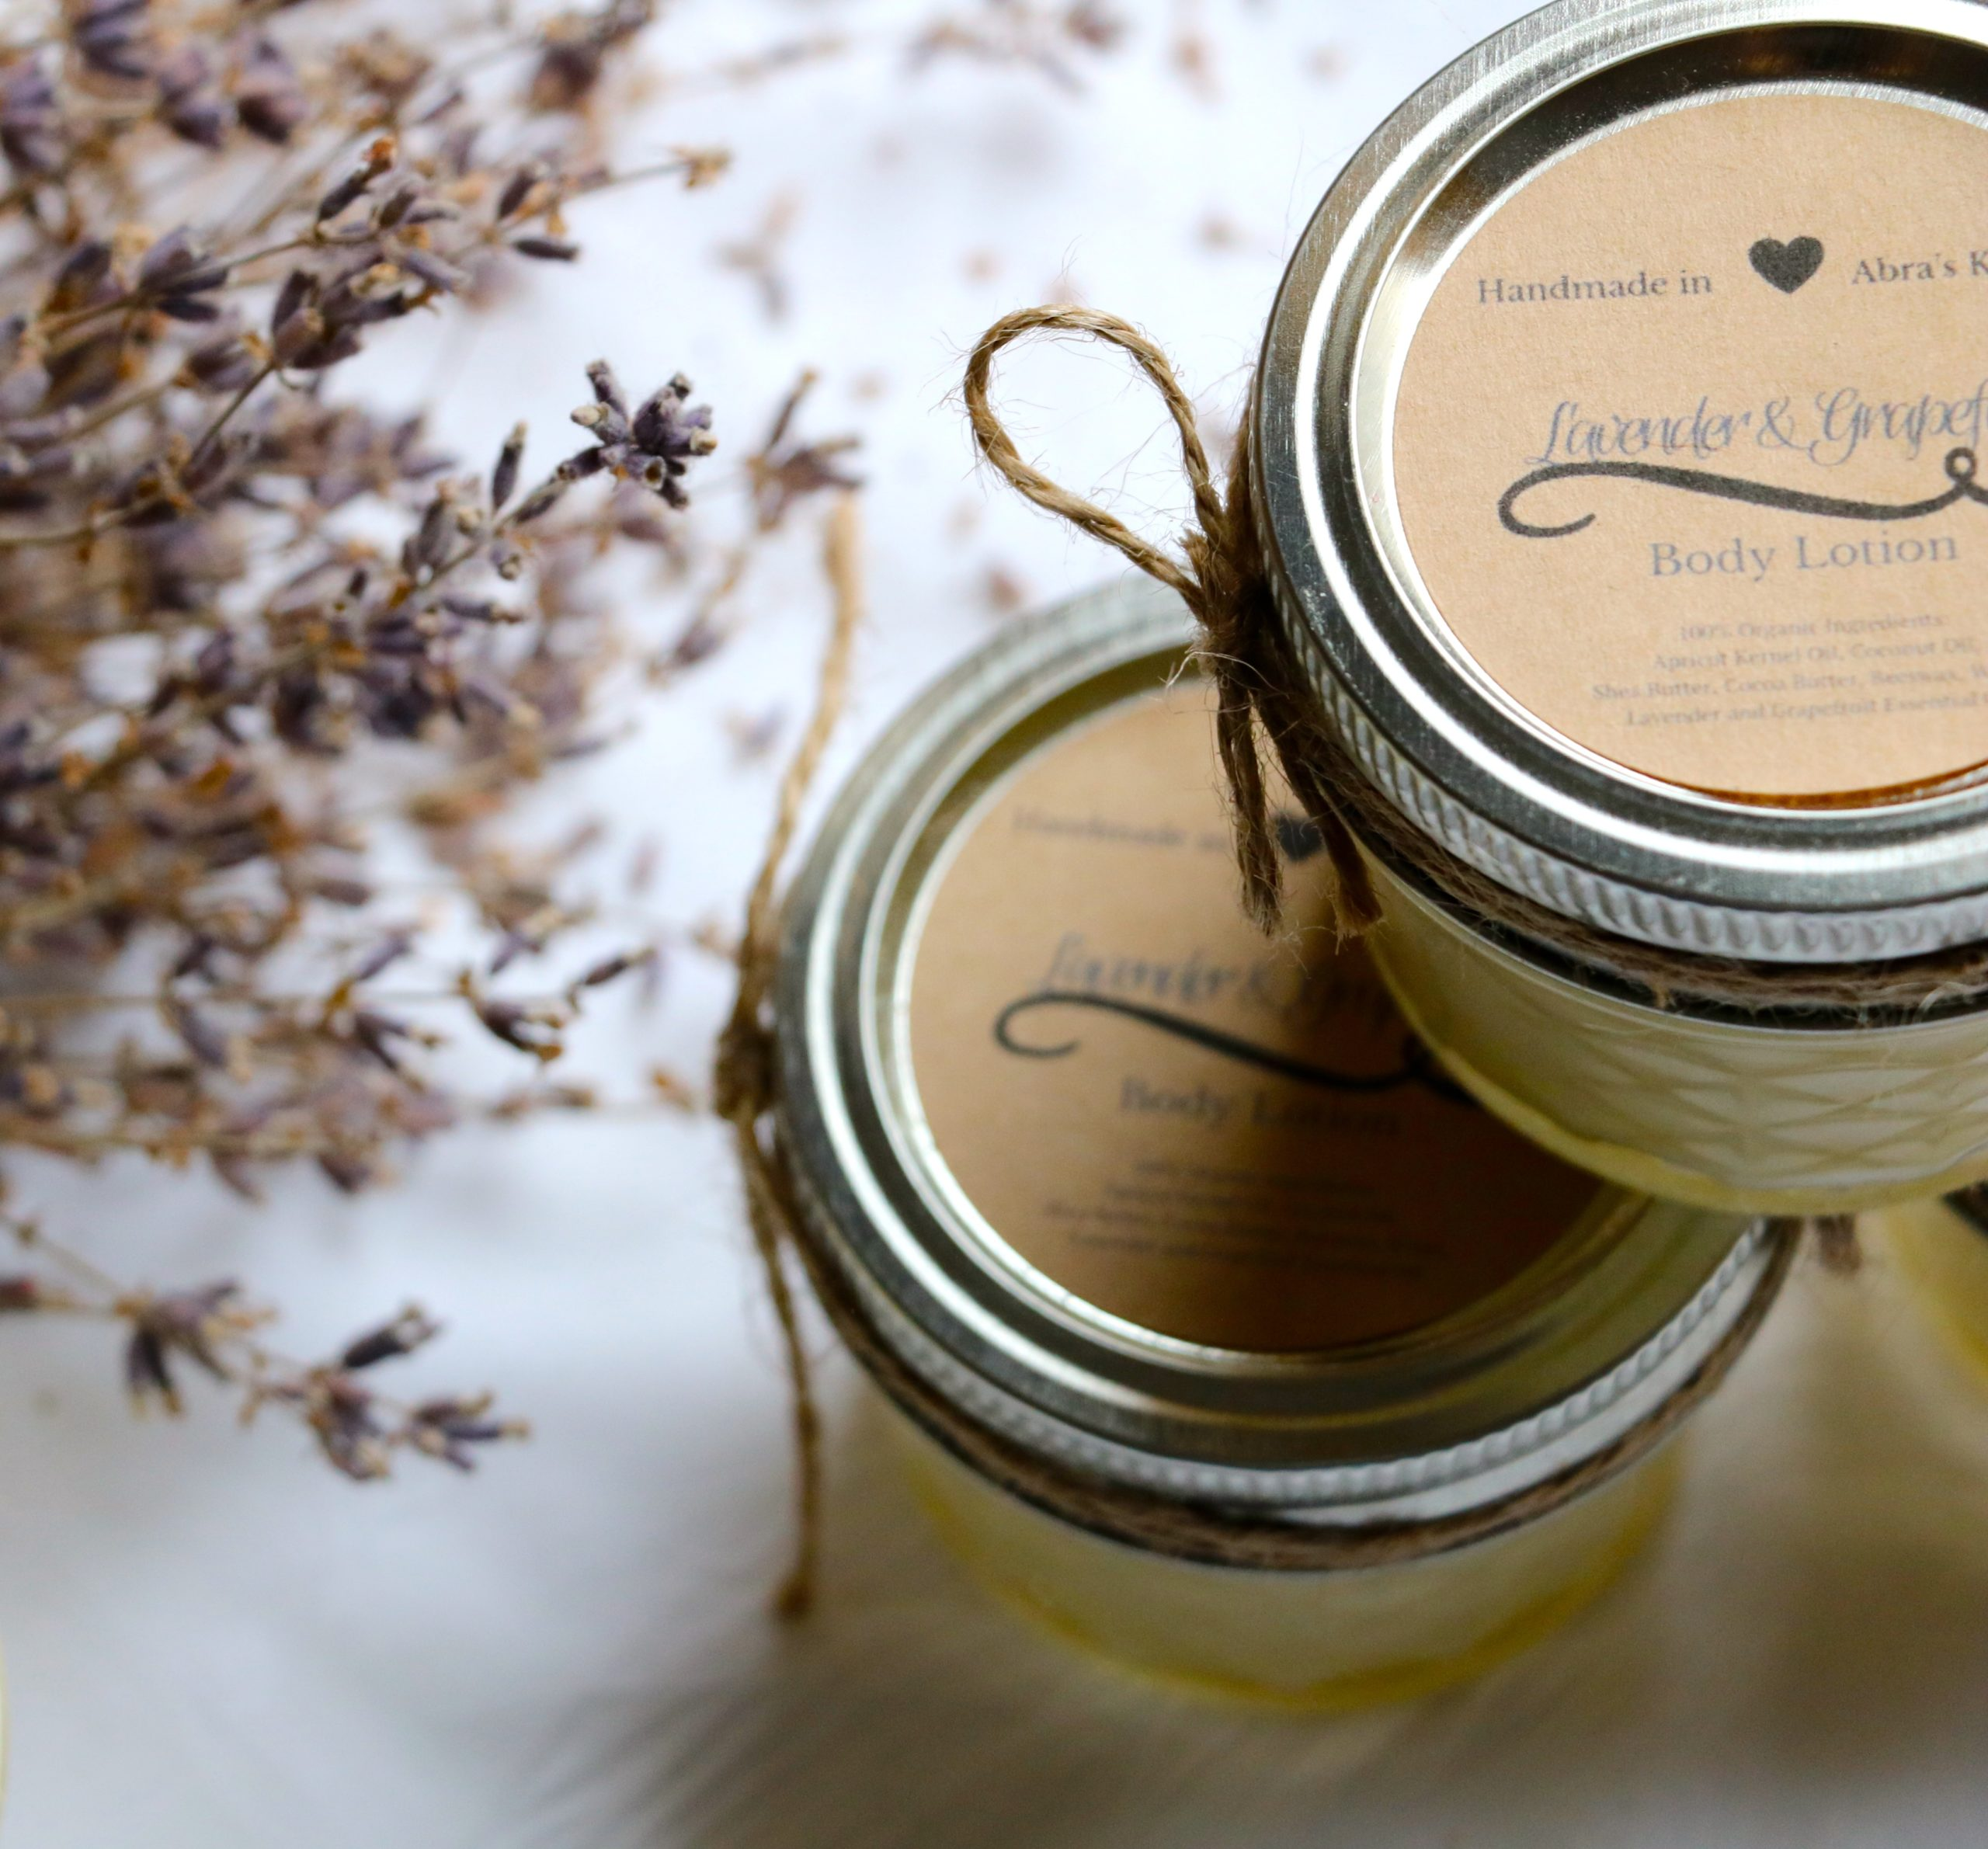 How to make homemade hand cream without beeswax